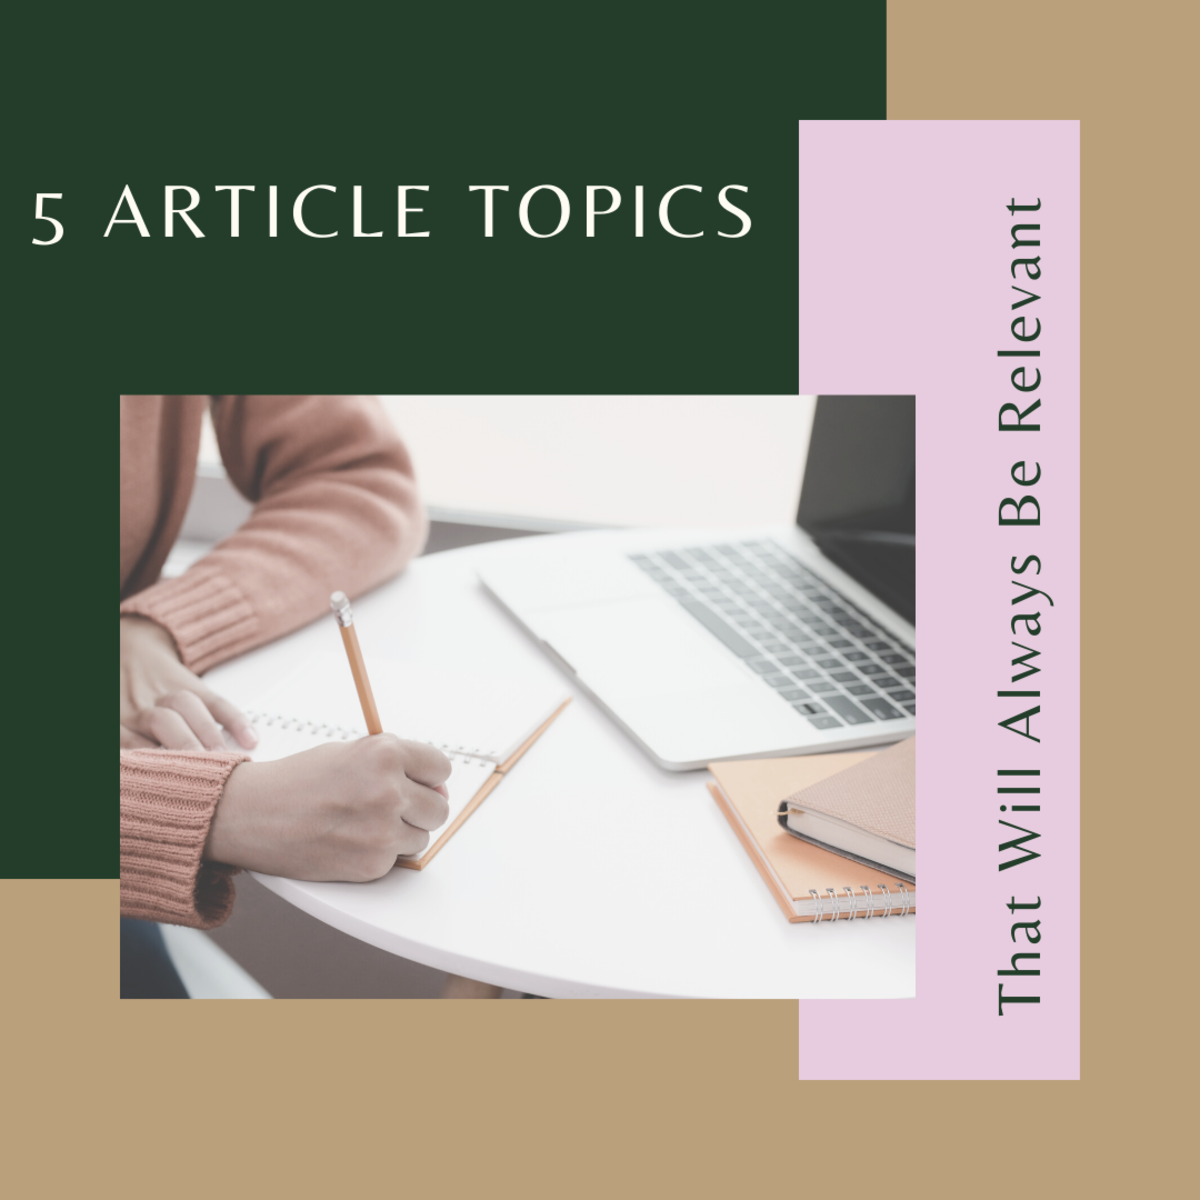 5 Article Topics That Will Always Be Relevant